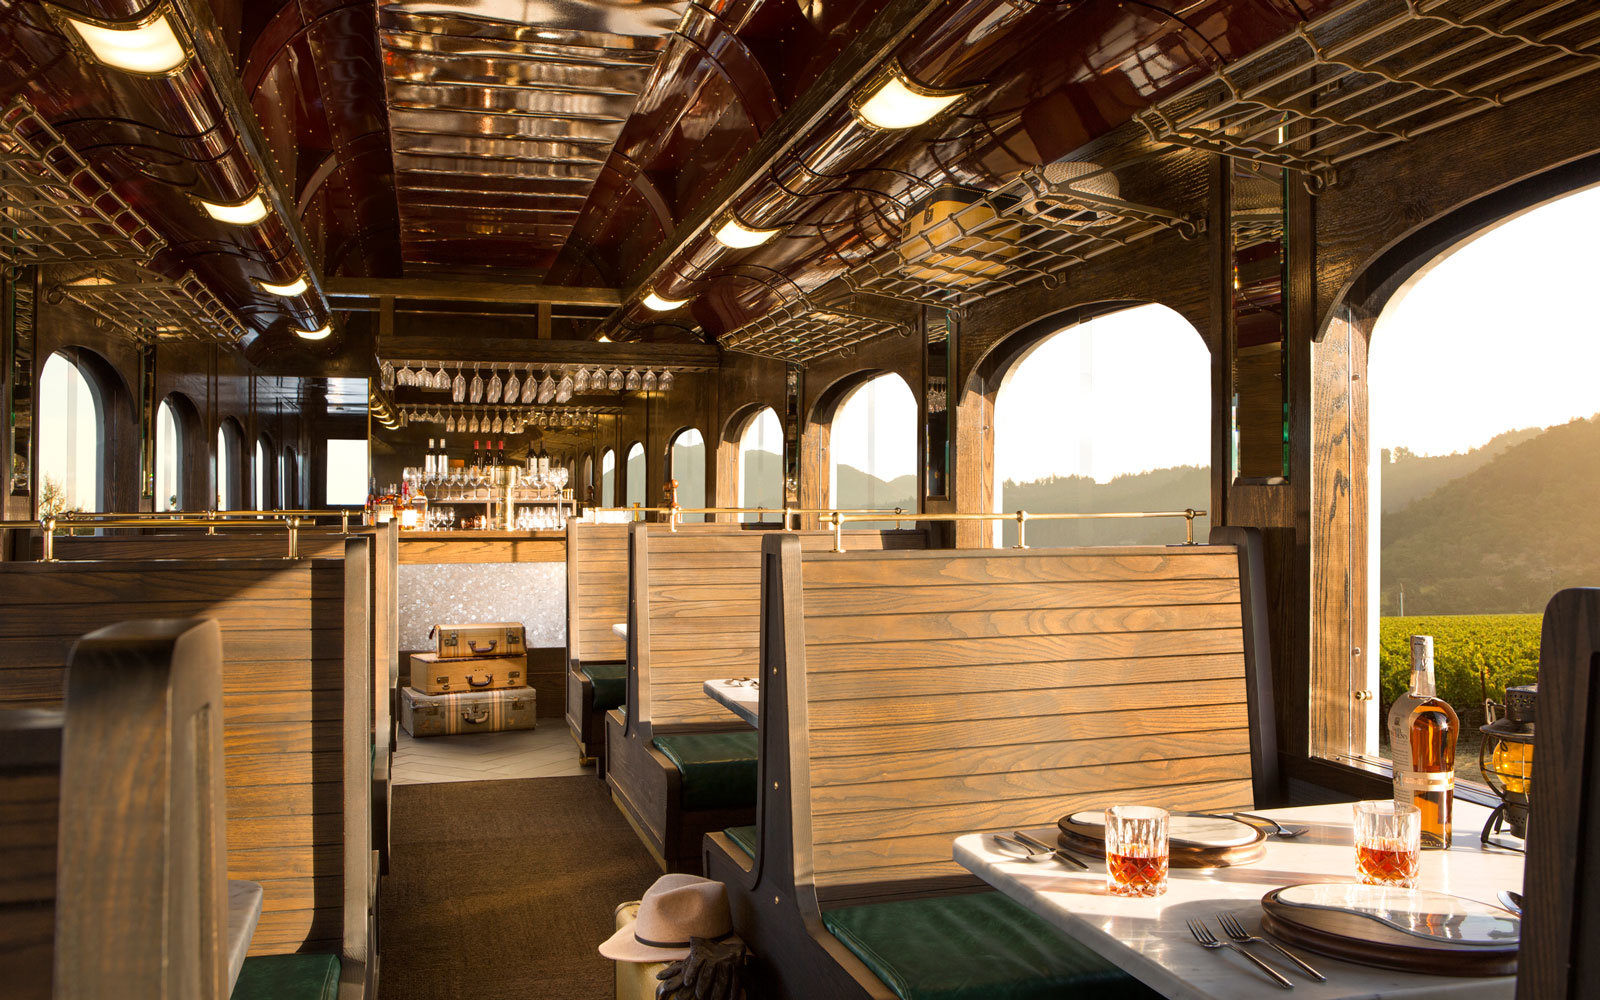 This Tequila Train Takes You On A 36 Mile Scenic Journey